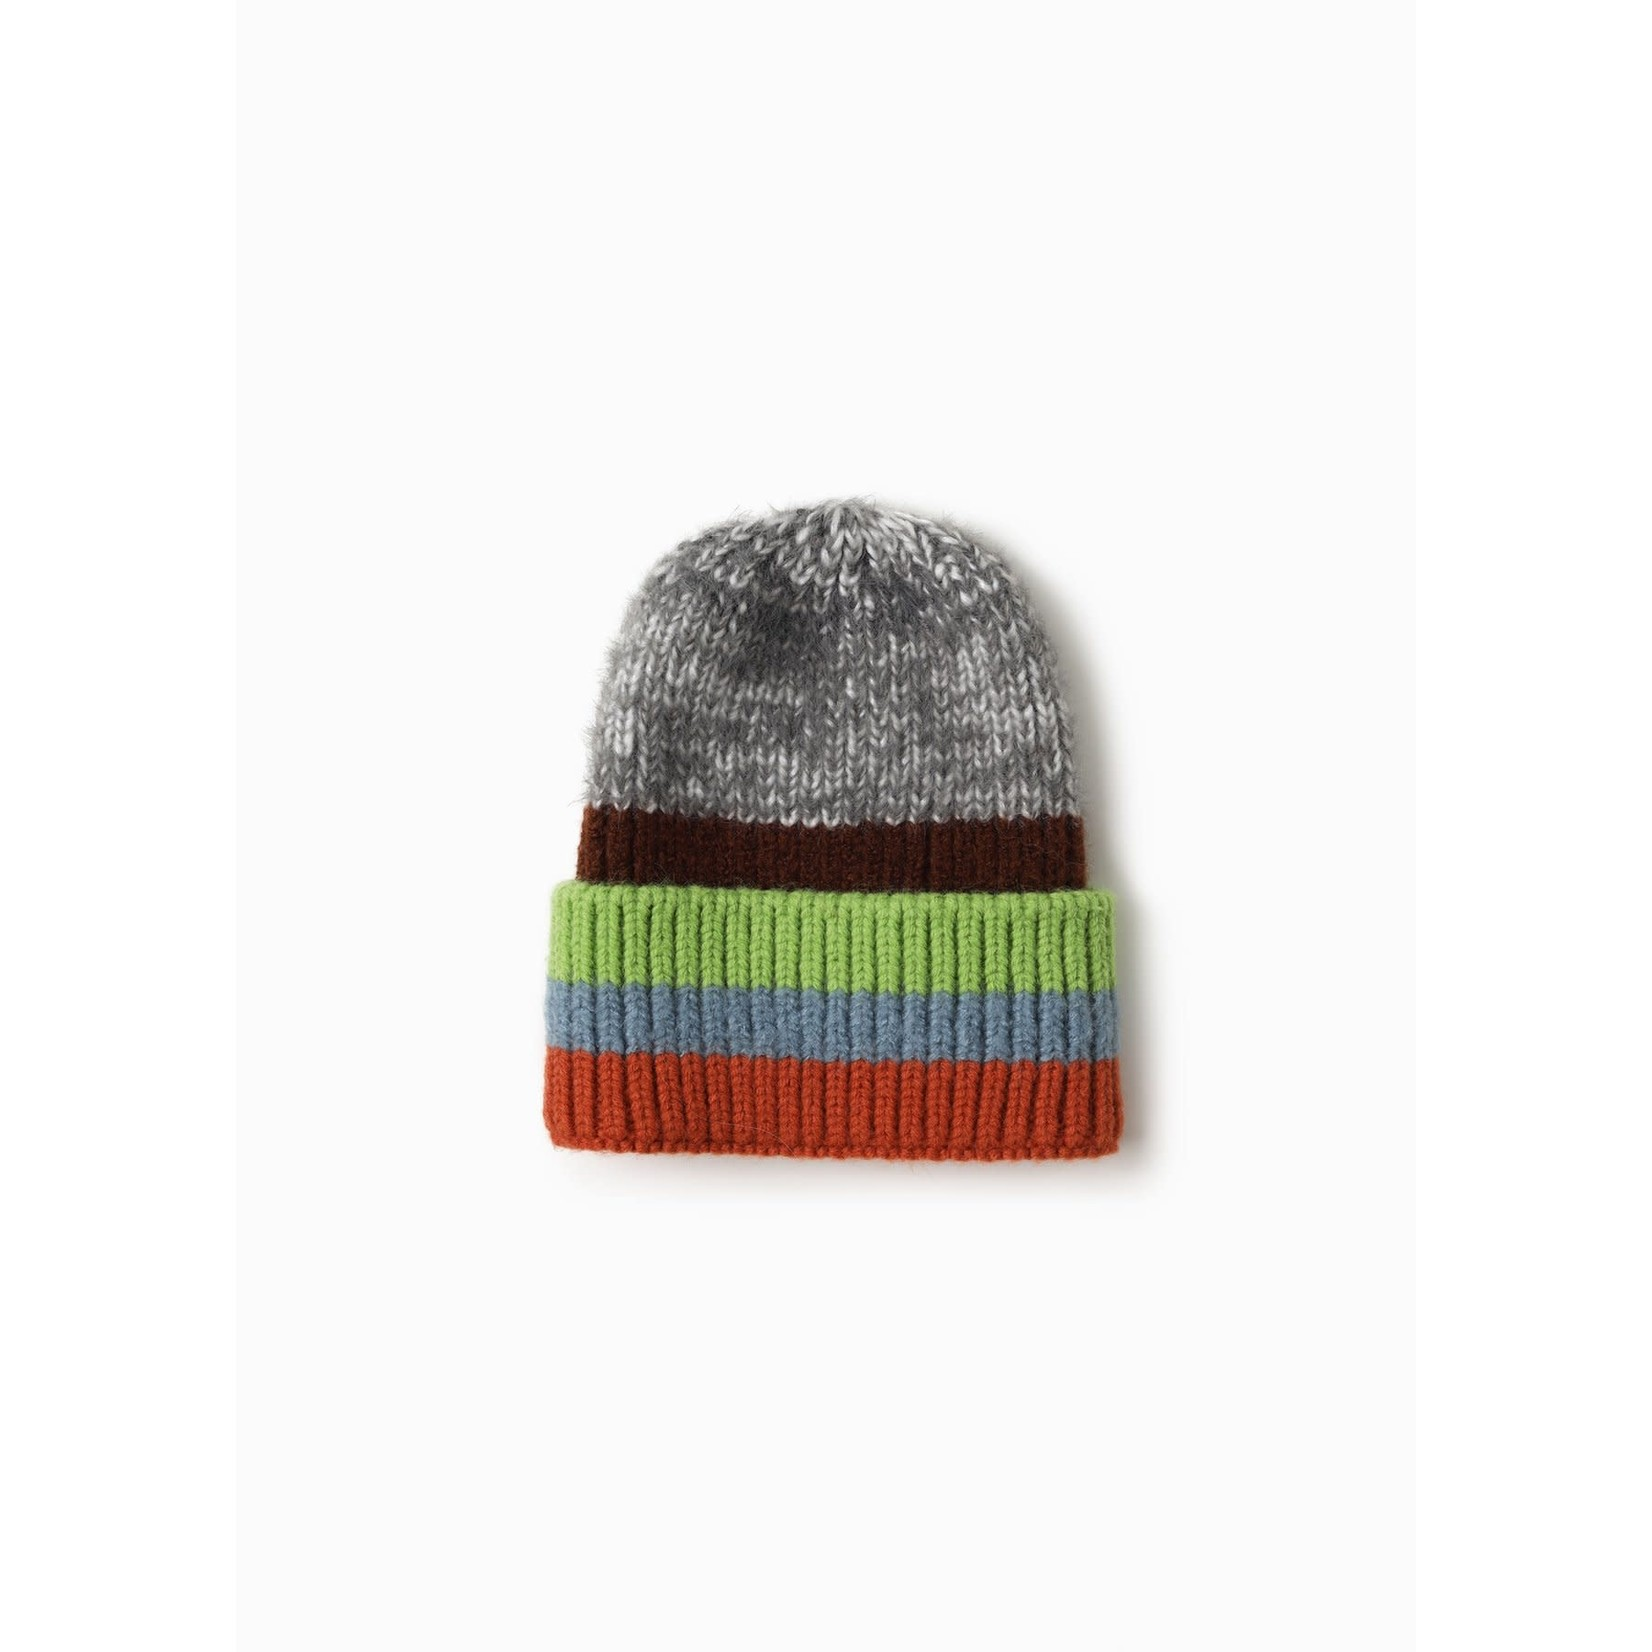 Cotton Candy Striped Beanie in Grey